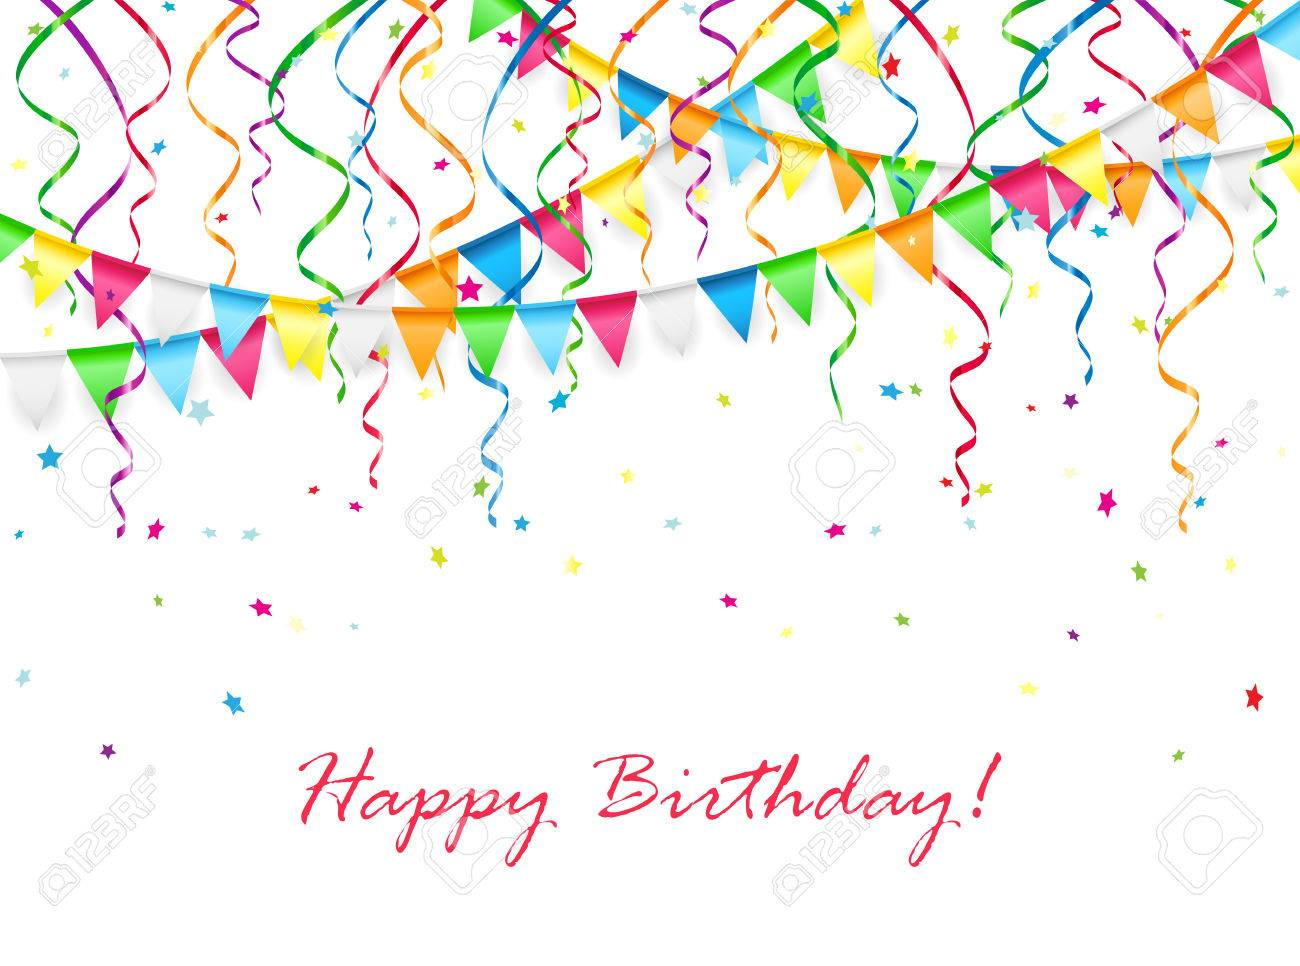 birthday background with multicolored pennants streamers and